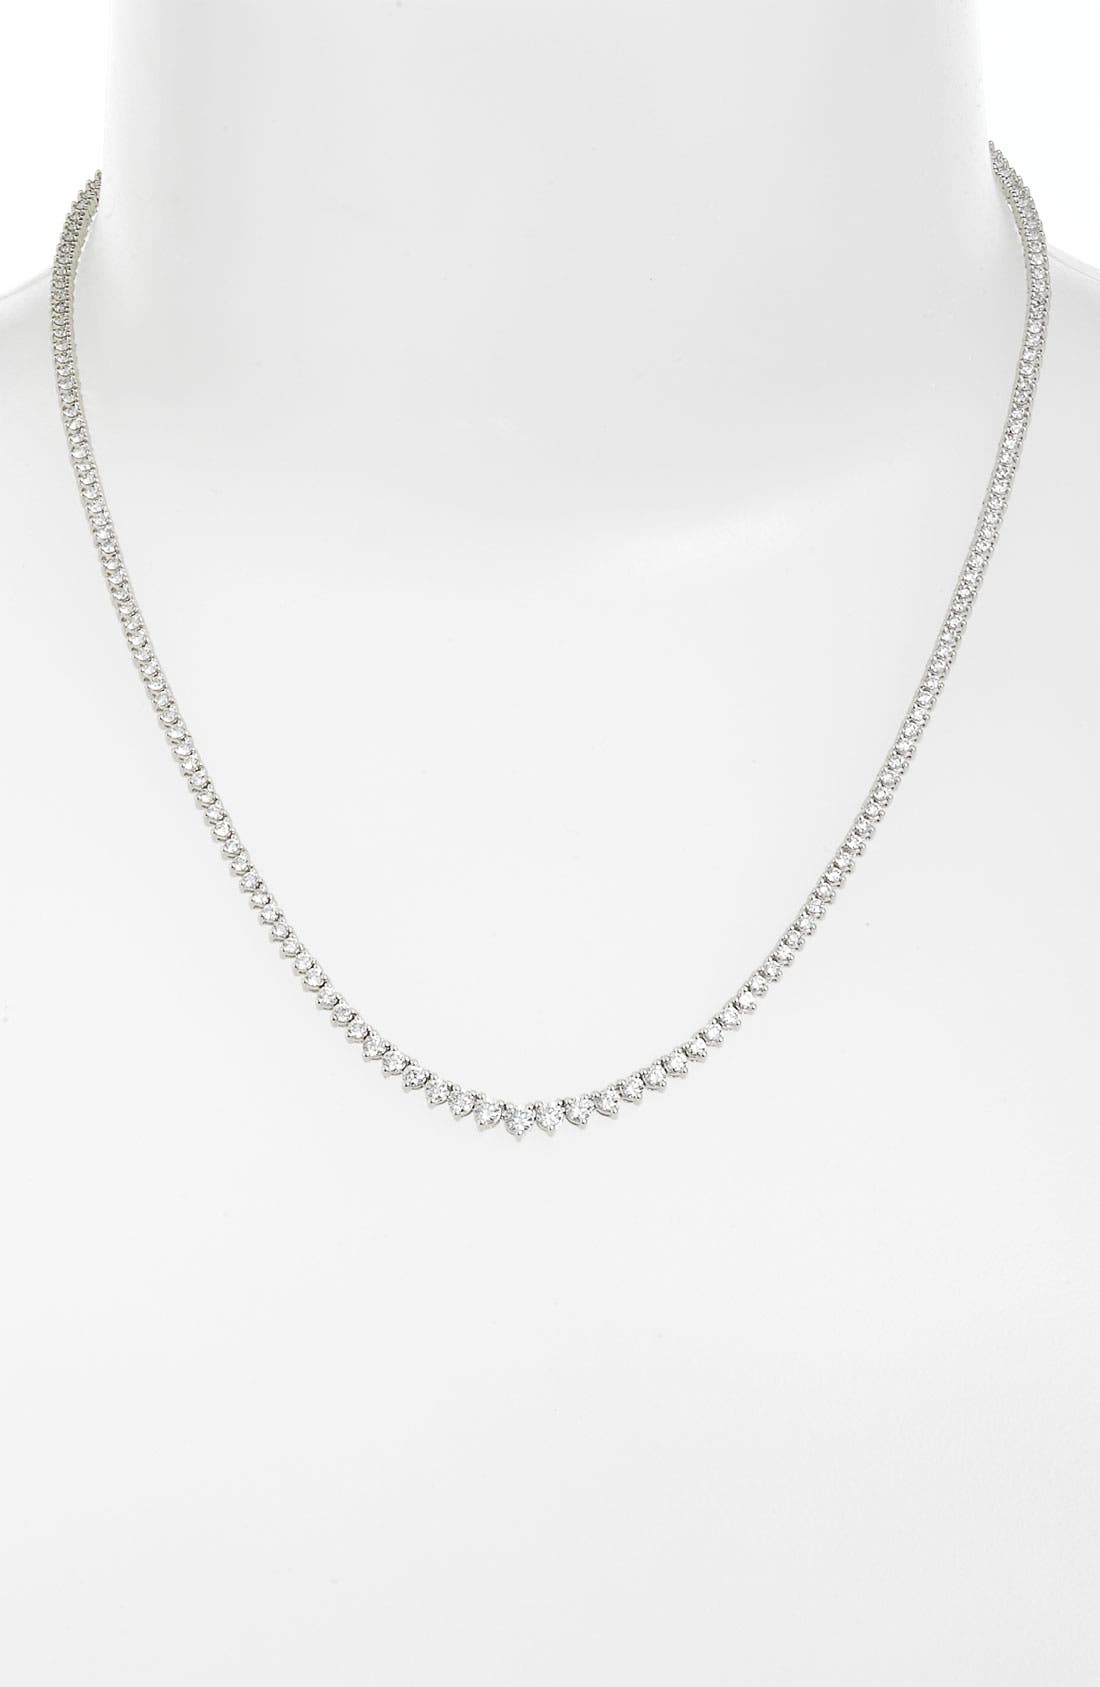 Alternate Image 1 Selected - Bony Levy 4.25ct tw Diamond Tennis Necklace (Nordstrom Exclusive)